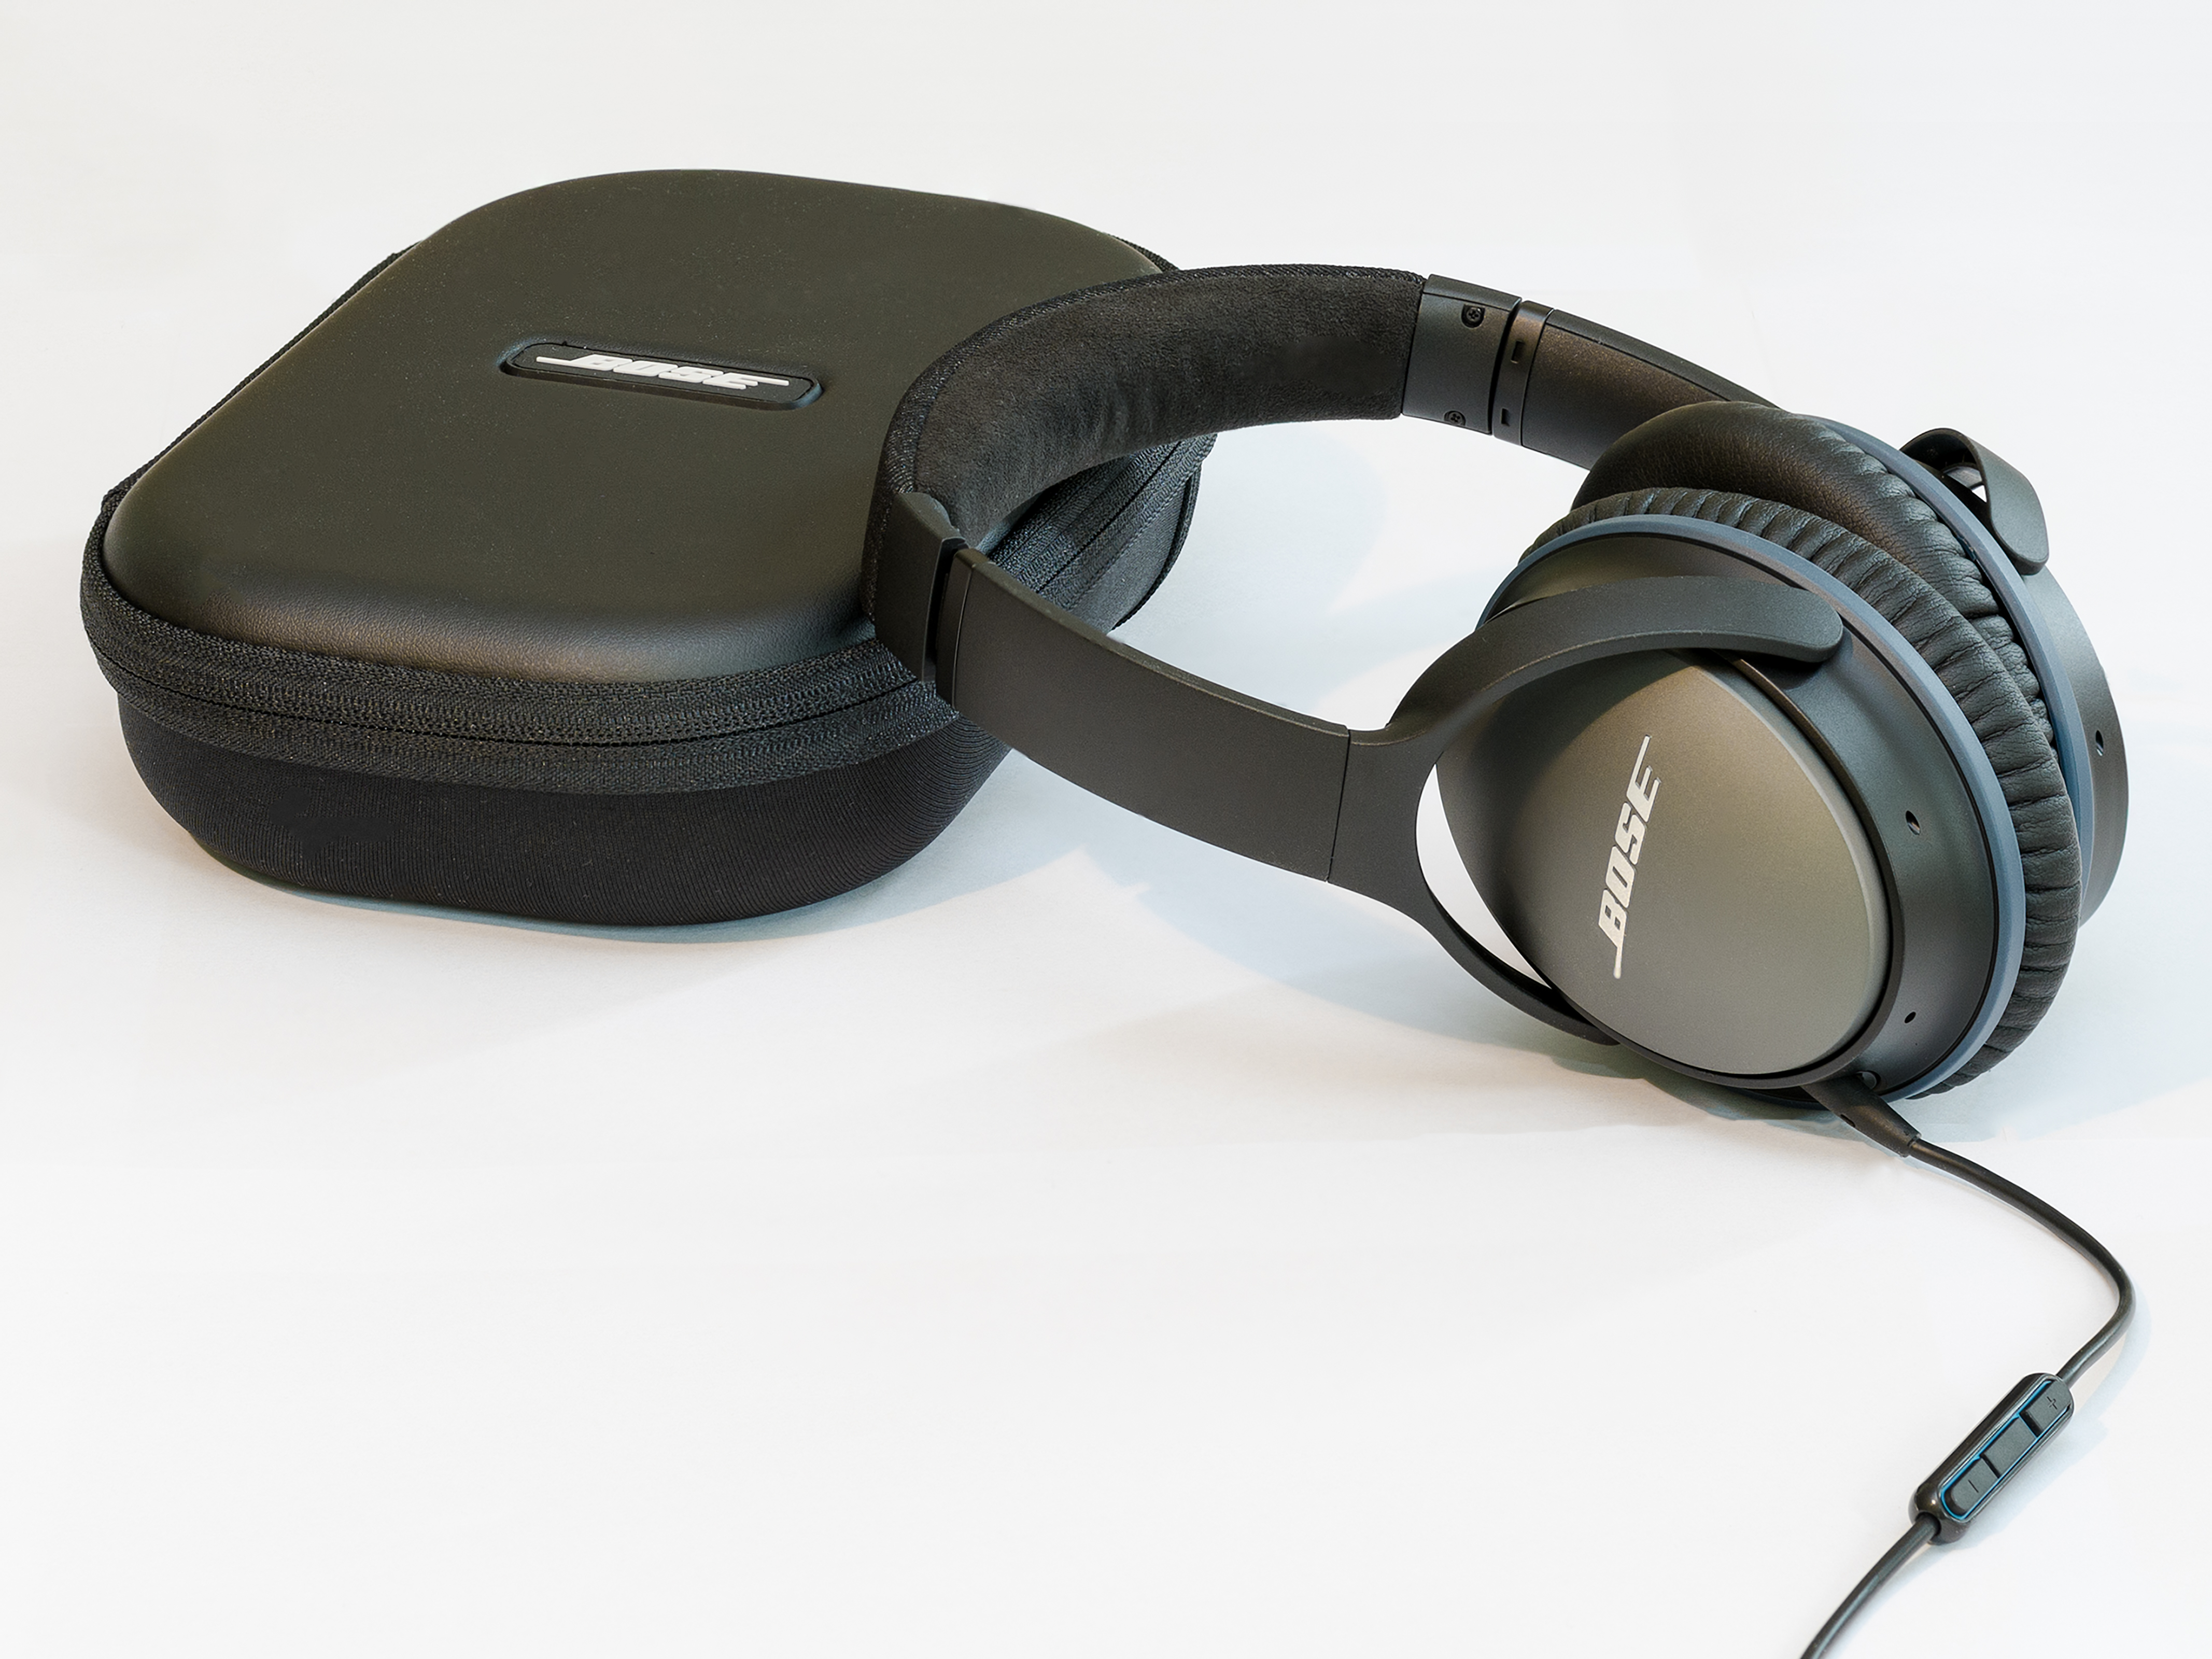 Bose QuietComfort 25 Acoustic Noise Cancelling Headphones with Carry Case